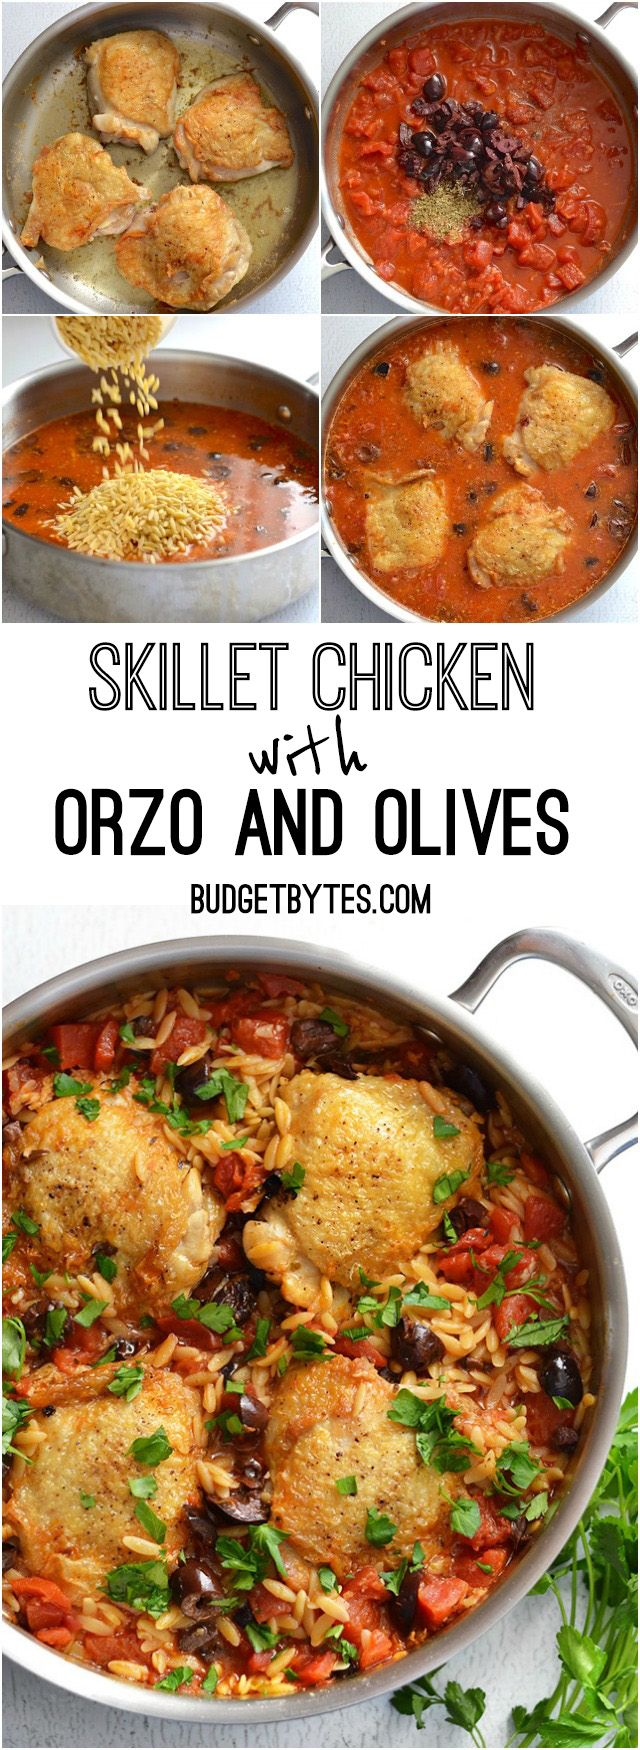 Skillet Chicken with Orzo and Olives simmers together in one skillet for maximum flavor and minimum cleanup. Step by step photos. @budgetbytes